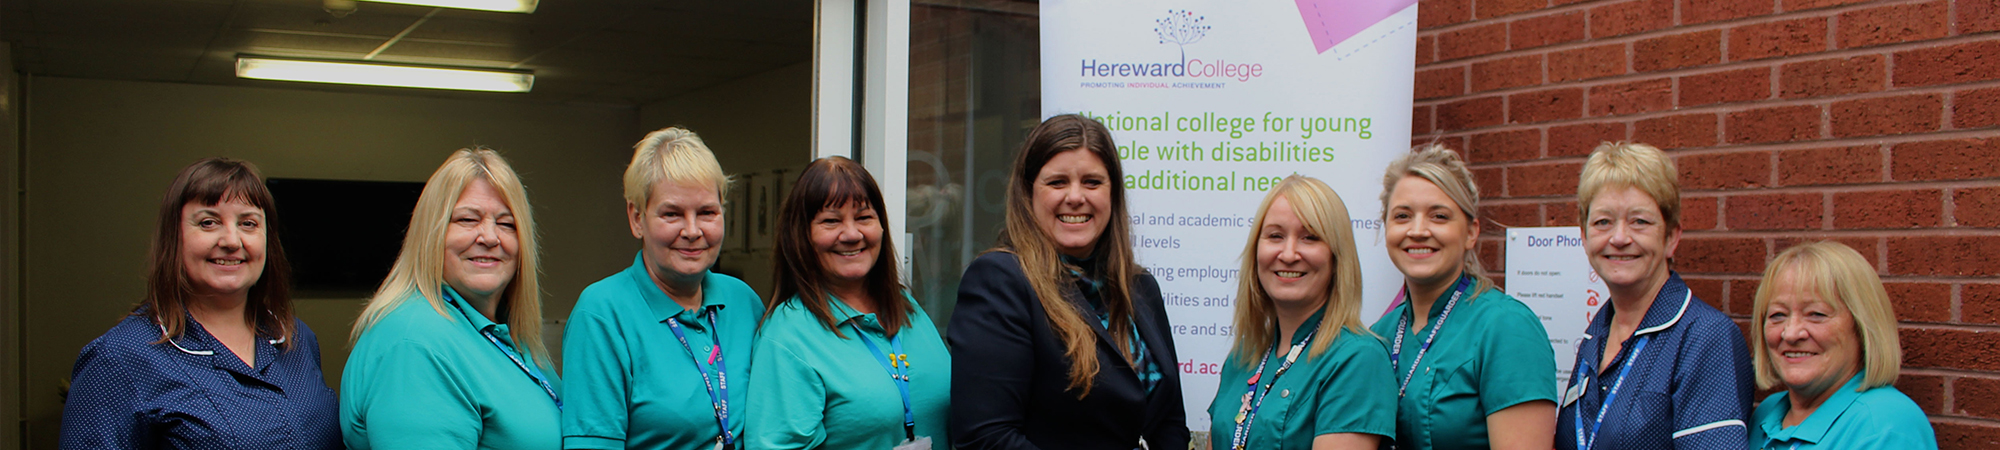 Hereward College